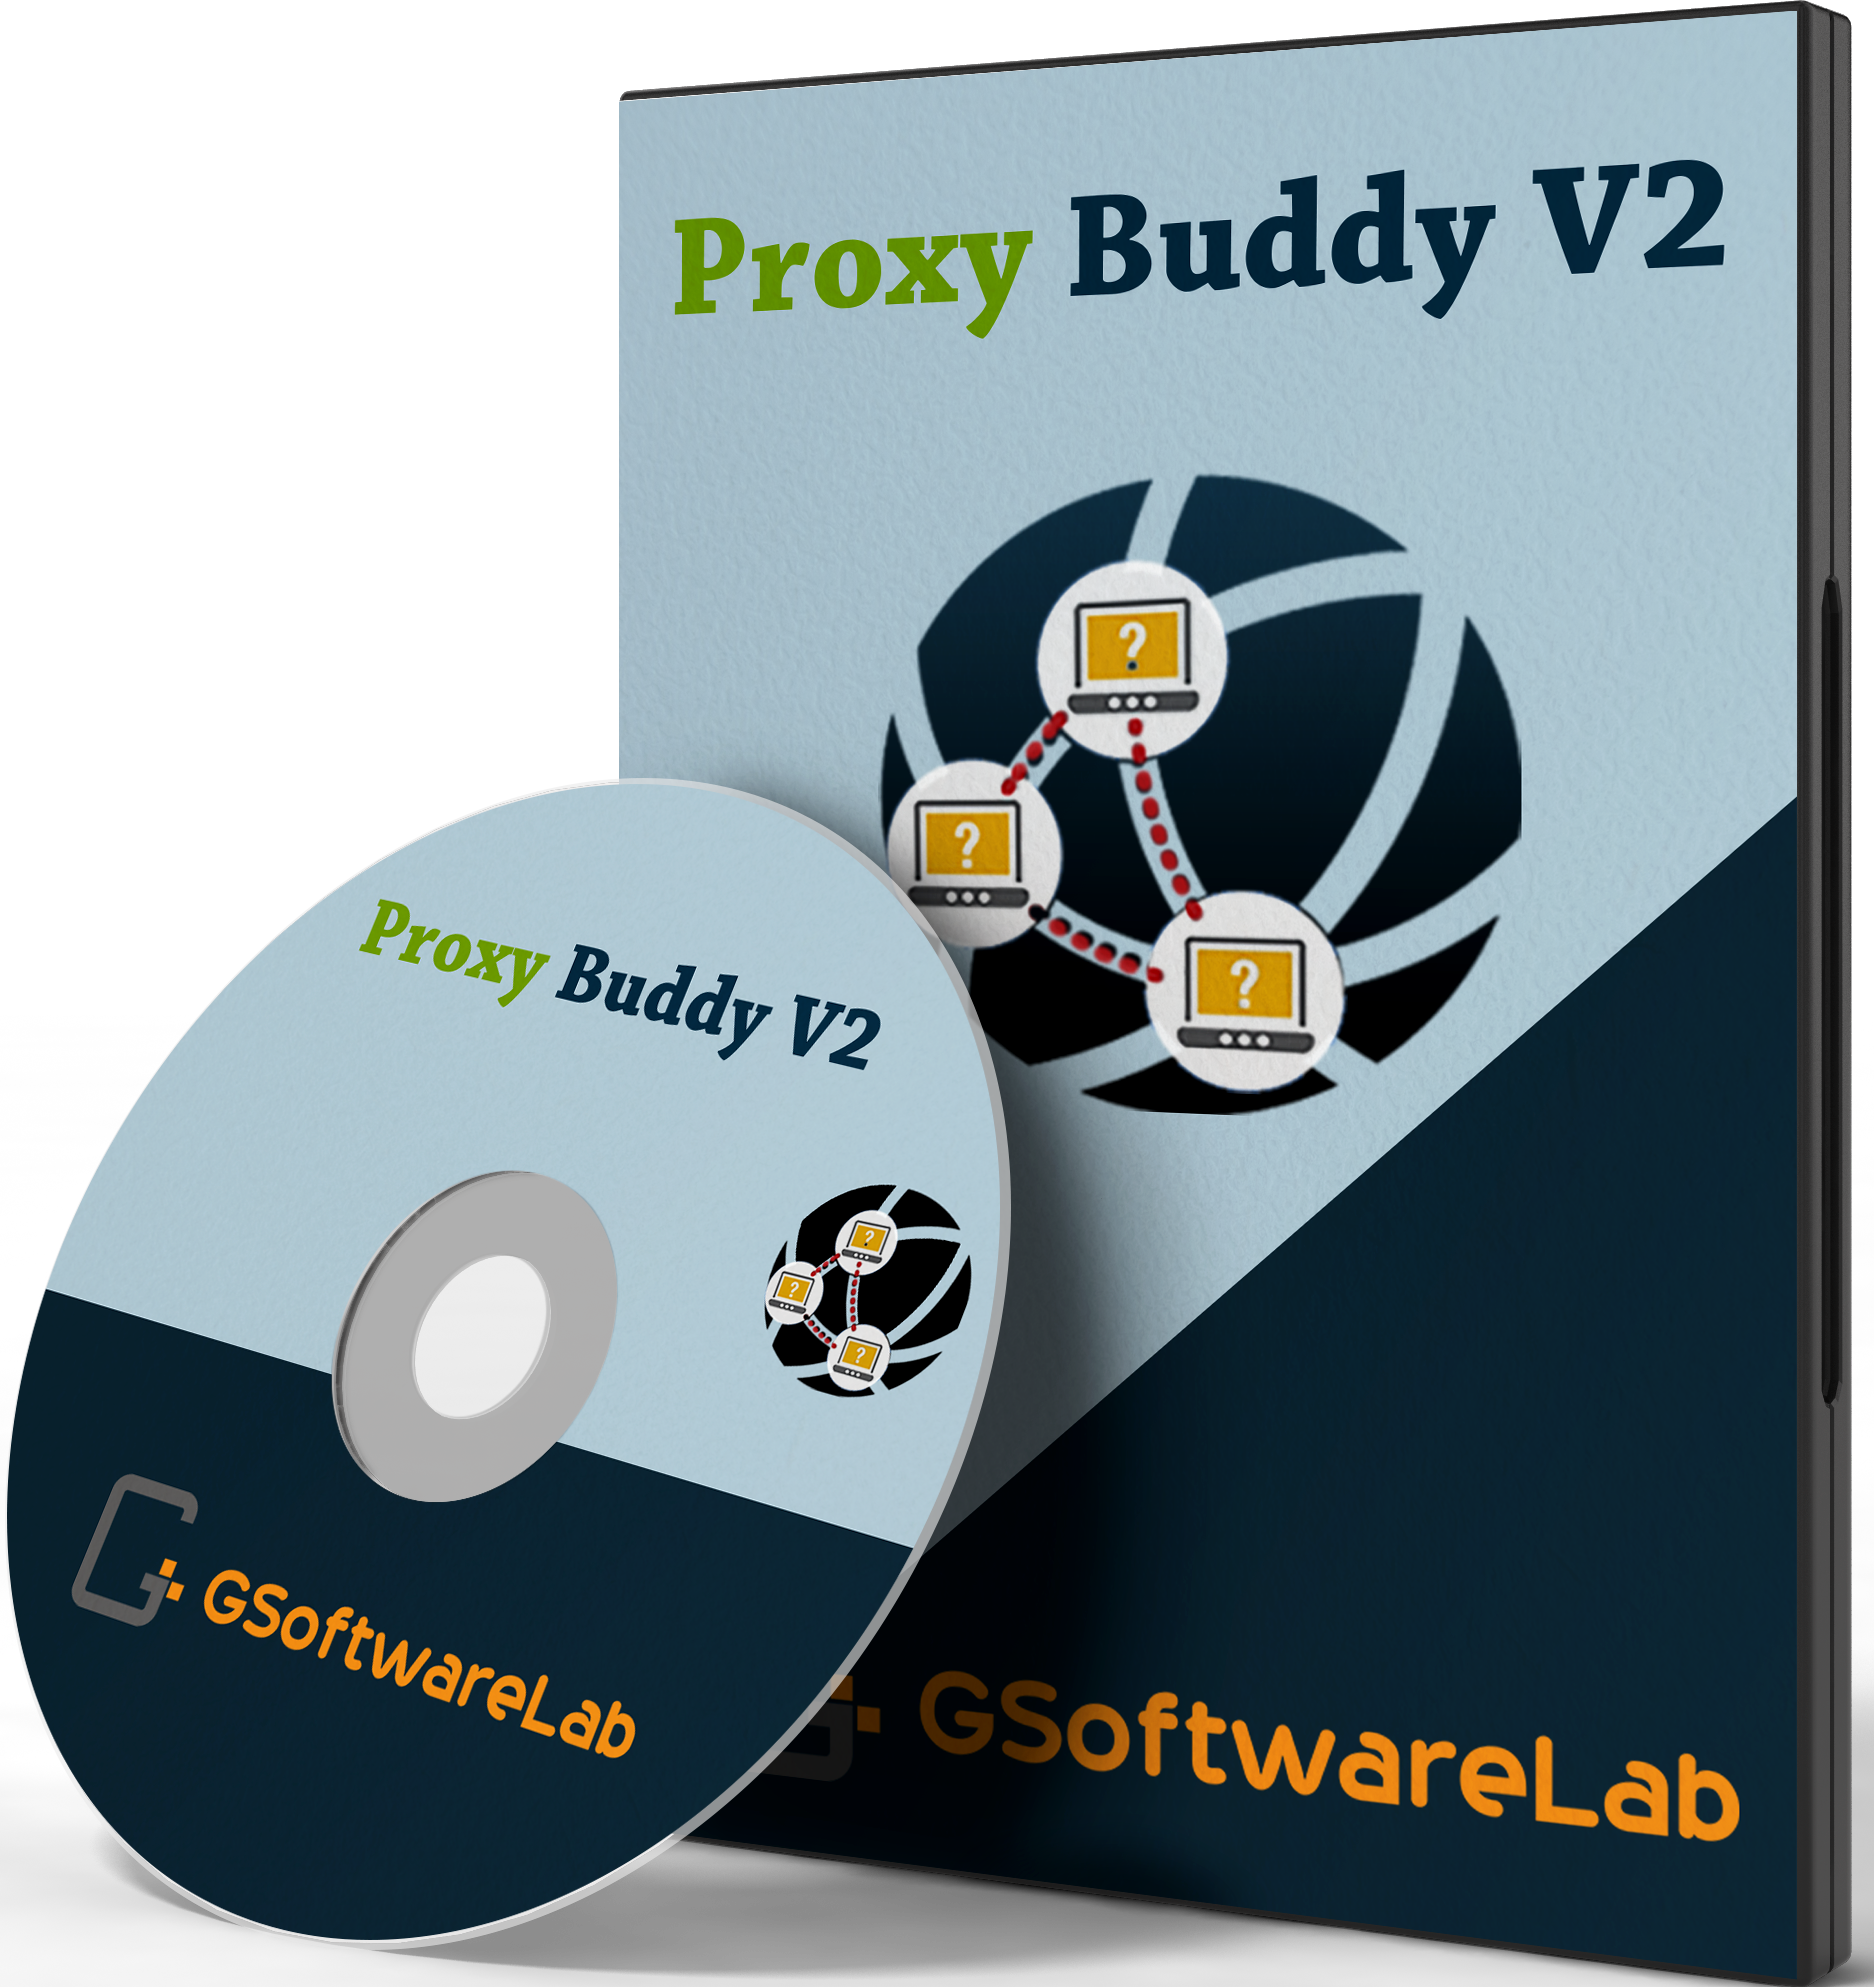 Proxy Buddy v2 - Fully Automated Proxy Scraper and Tester